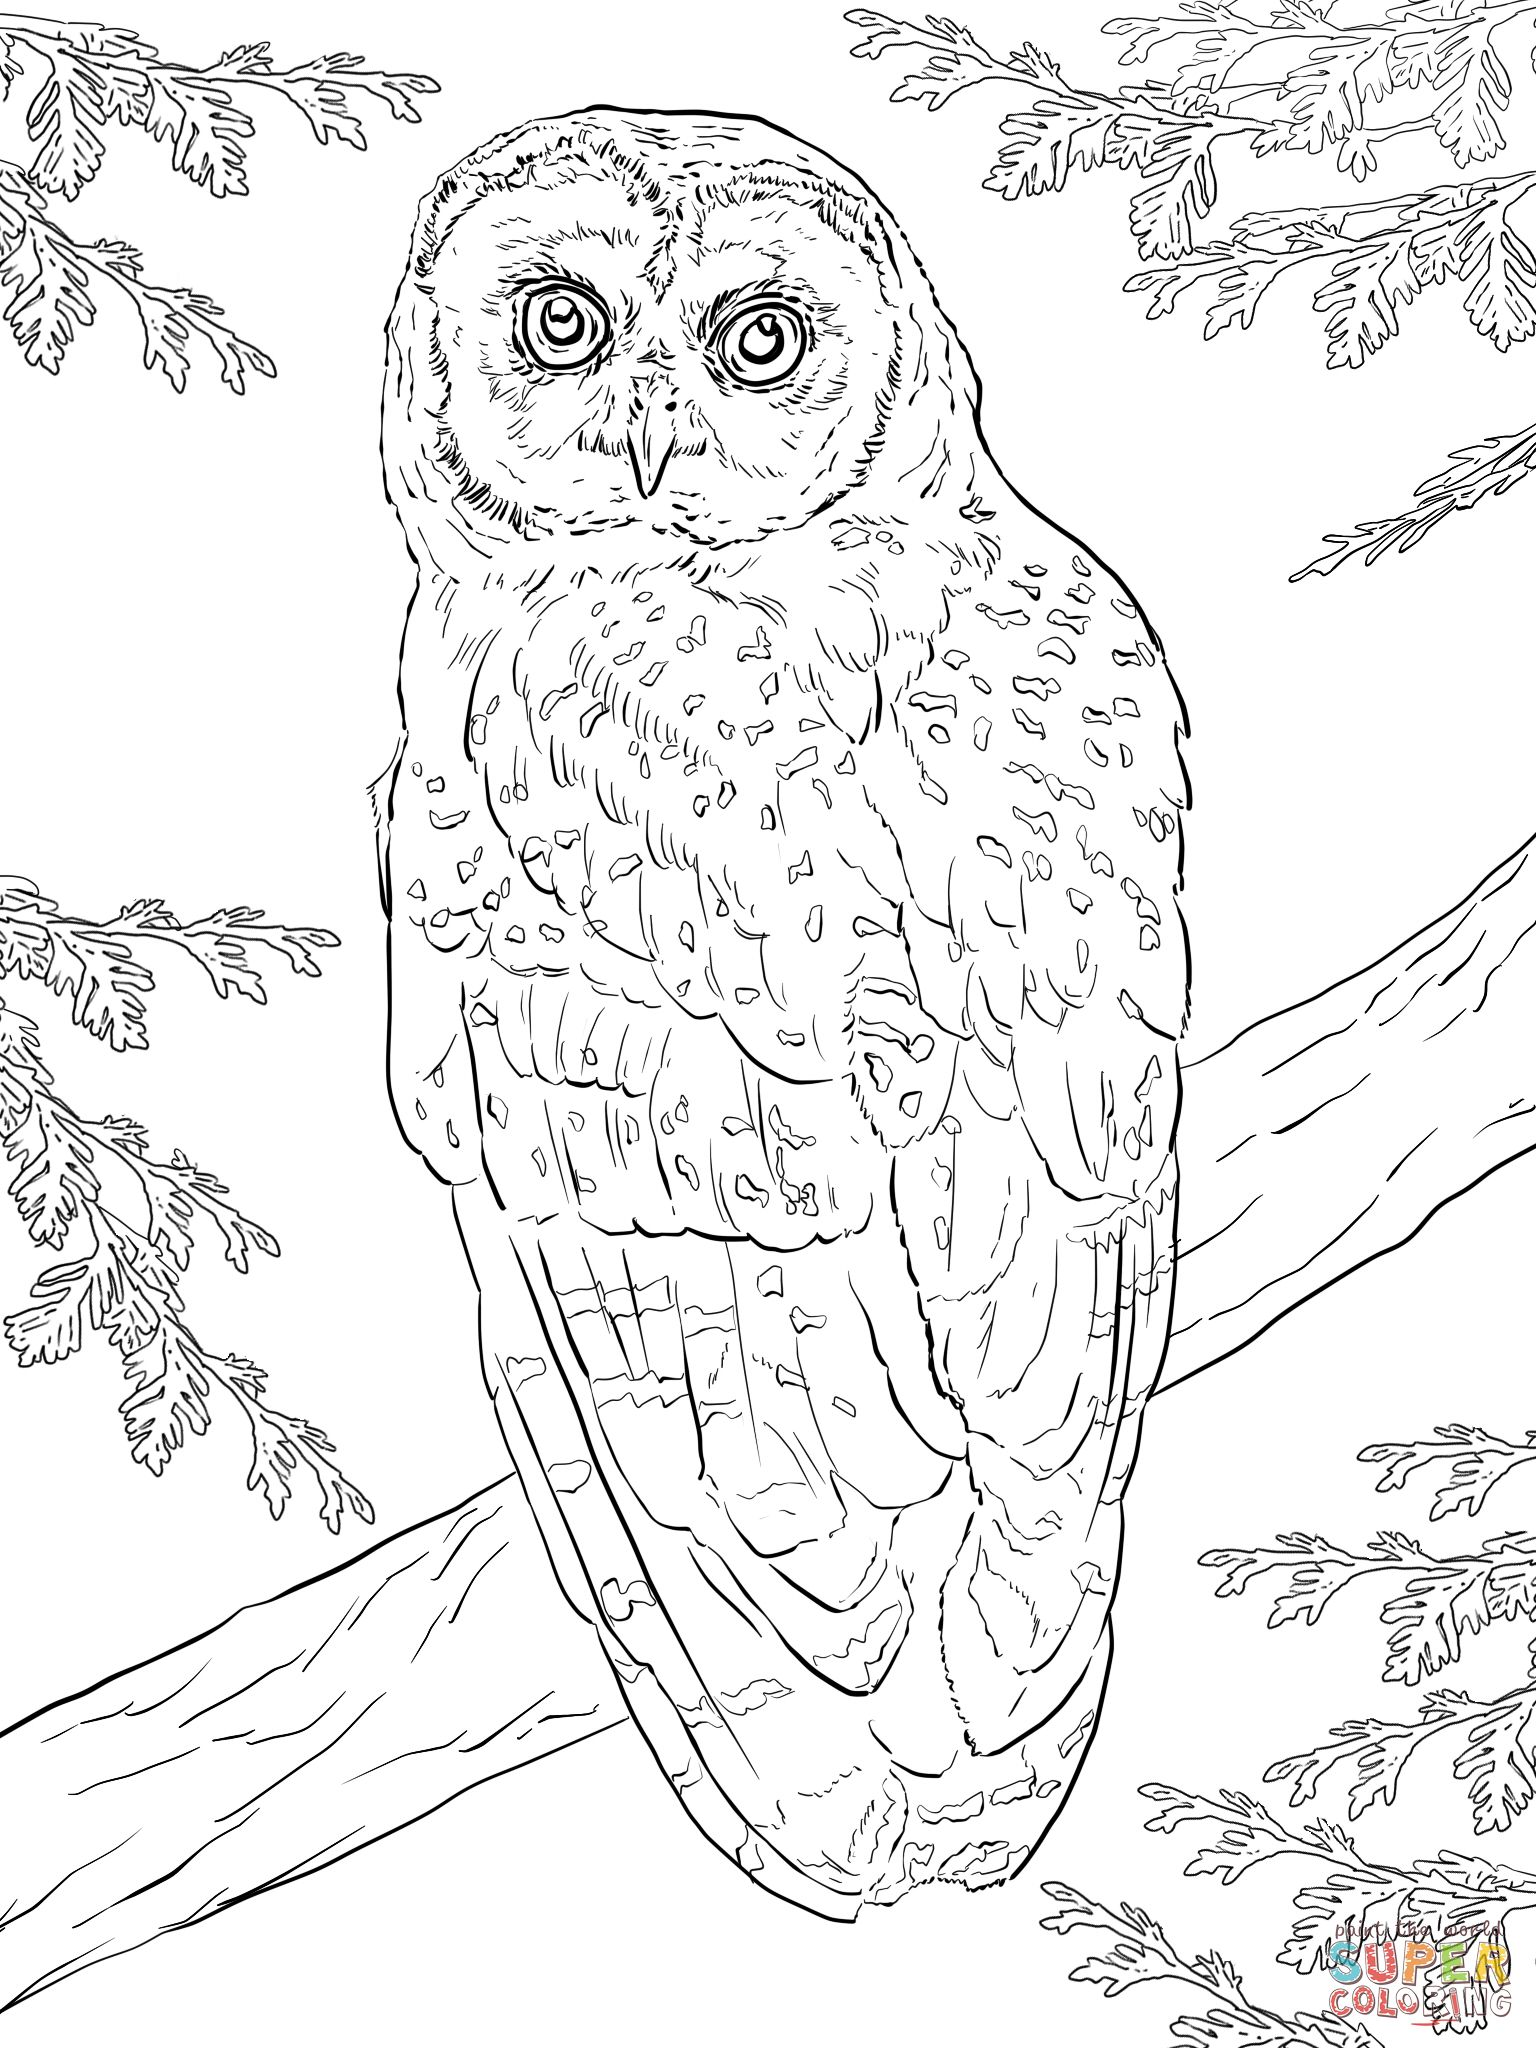 Northern Spotted Owl Coloring page | Free Printable Coloring Pages ...